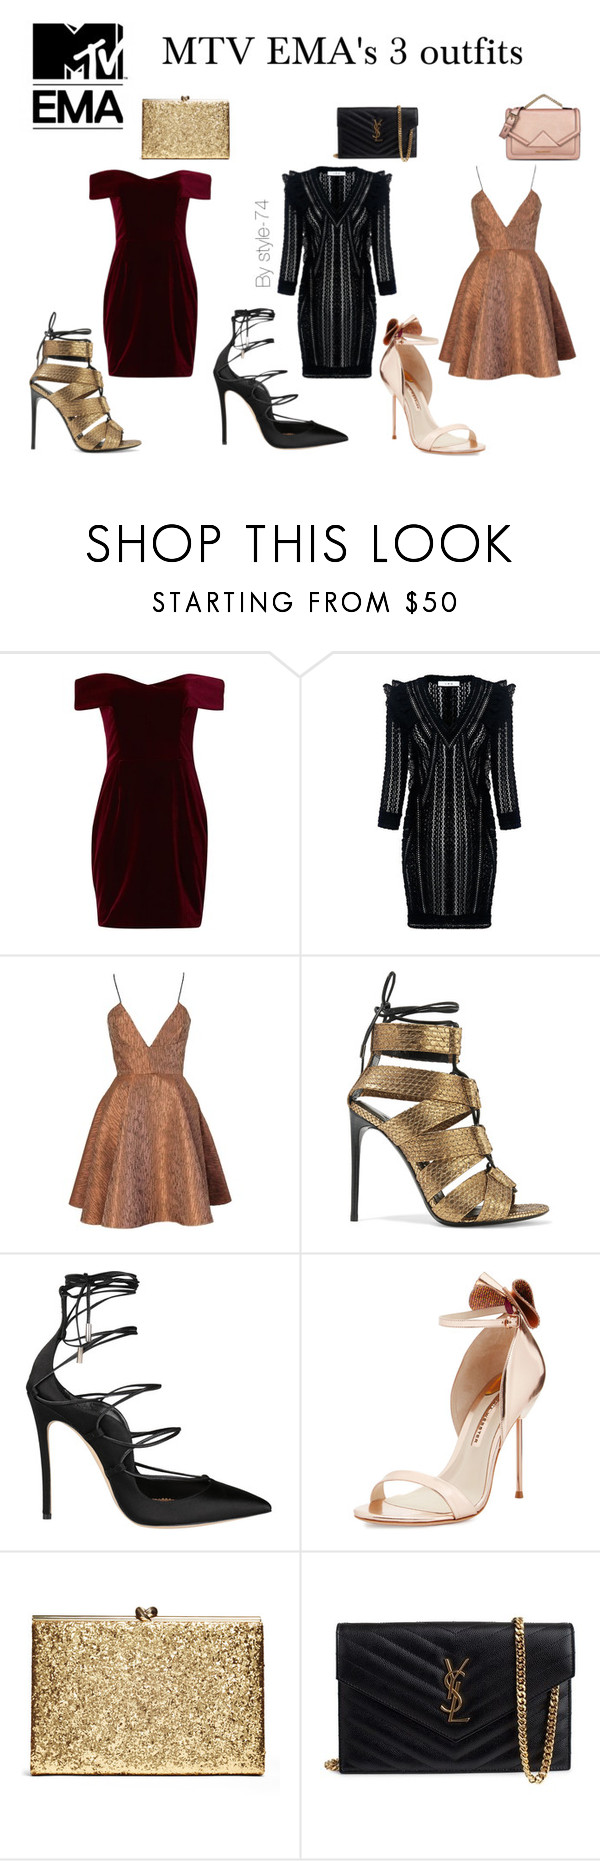 """""""MTV EMA's 3 outfits for the red carpet"""" by style-74 ❤ liked on Polyvore featuring Nicholas, IRO, Joana Almagro, Tom Ford, Dsquared2, Sophia Webster, Yves Saint Laurent and Karl Lagerfeld"""